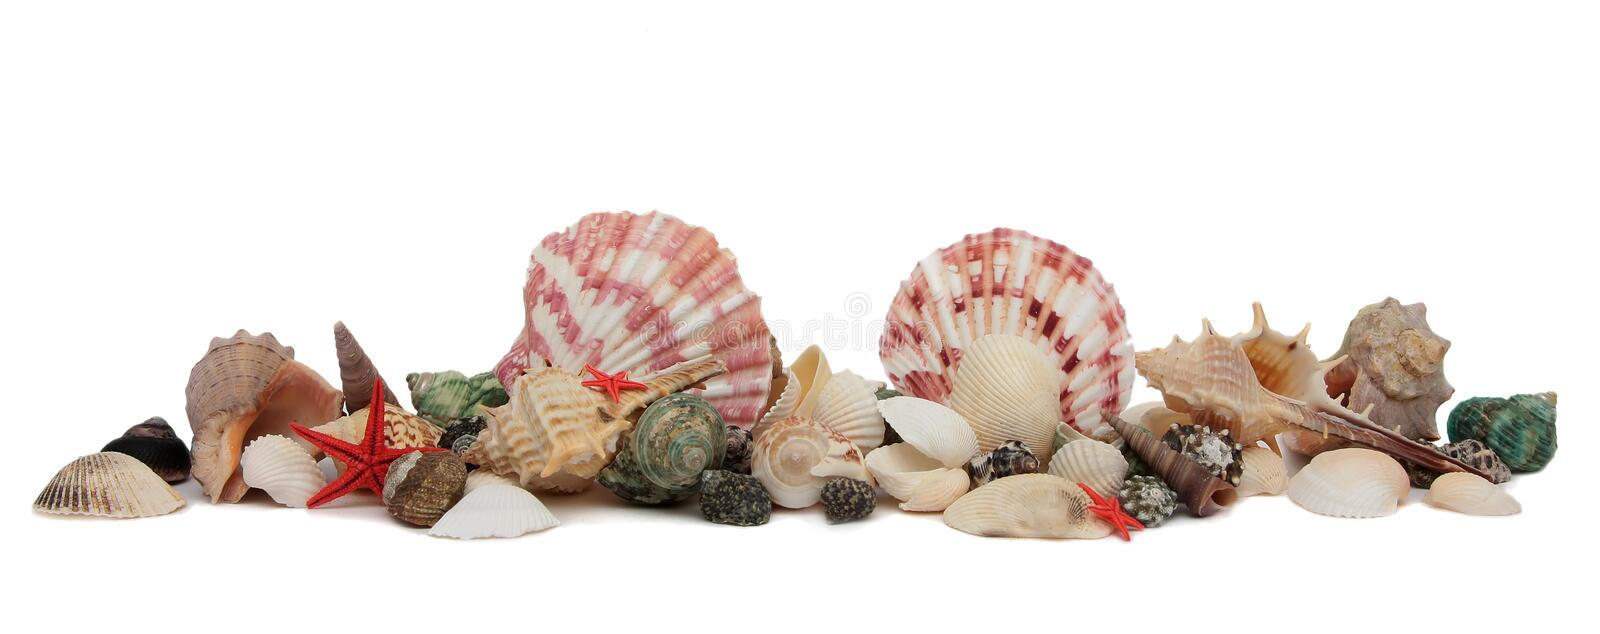 Seashell isolado no fundo branco fotografia de stock royalty free